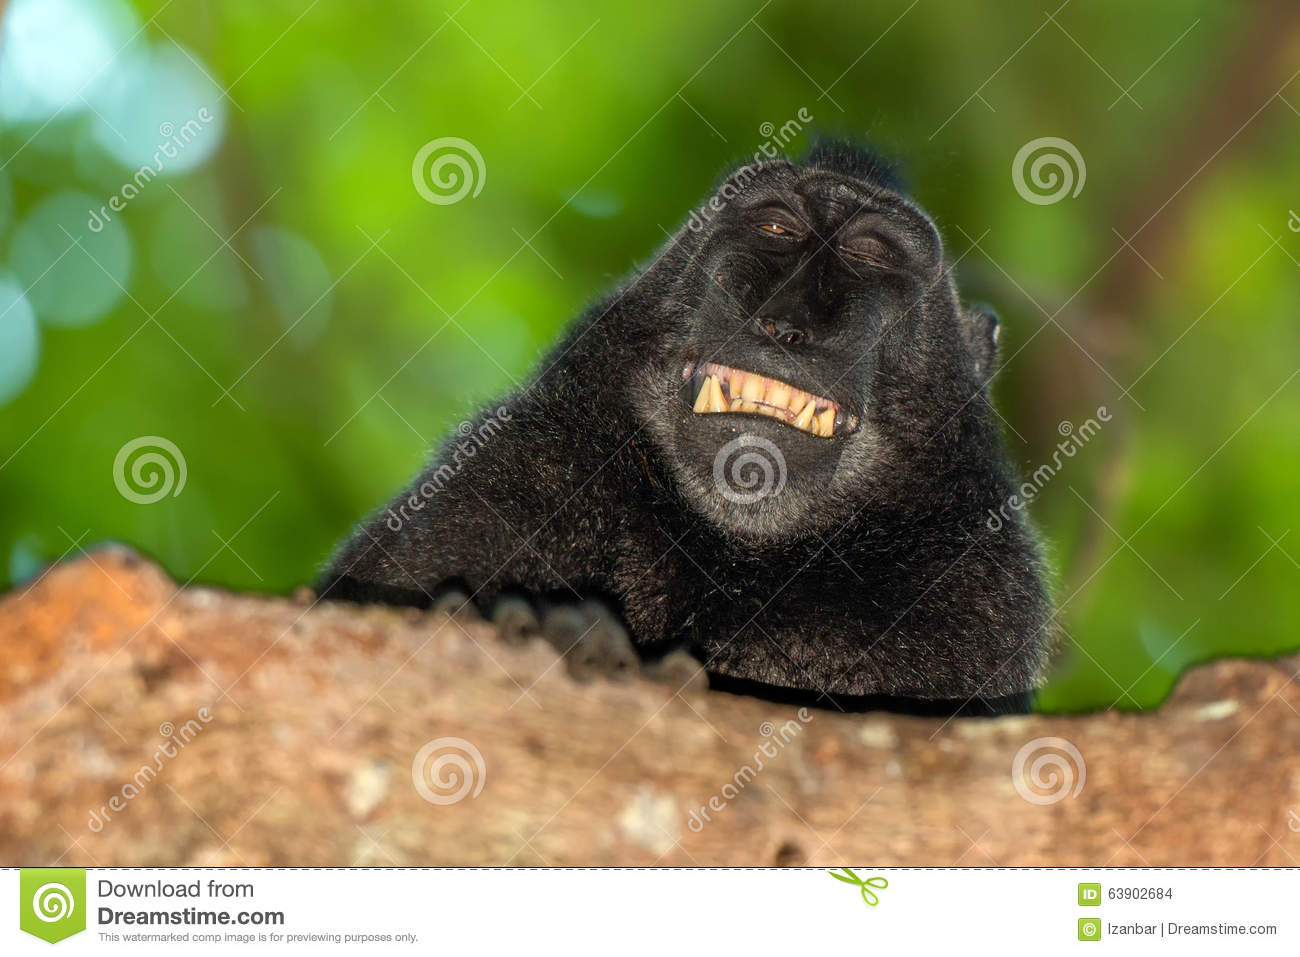 Crested Black Macaque clipart #14, Download drawings